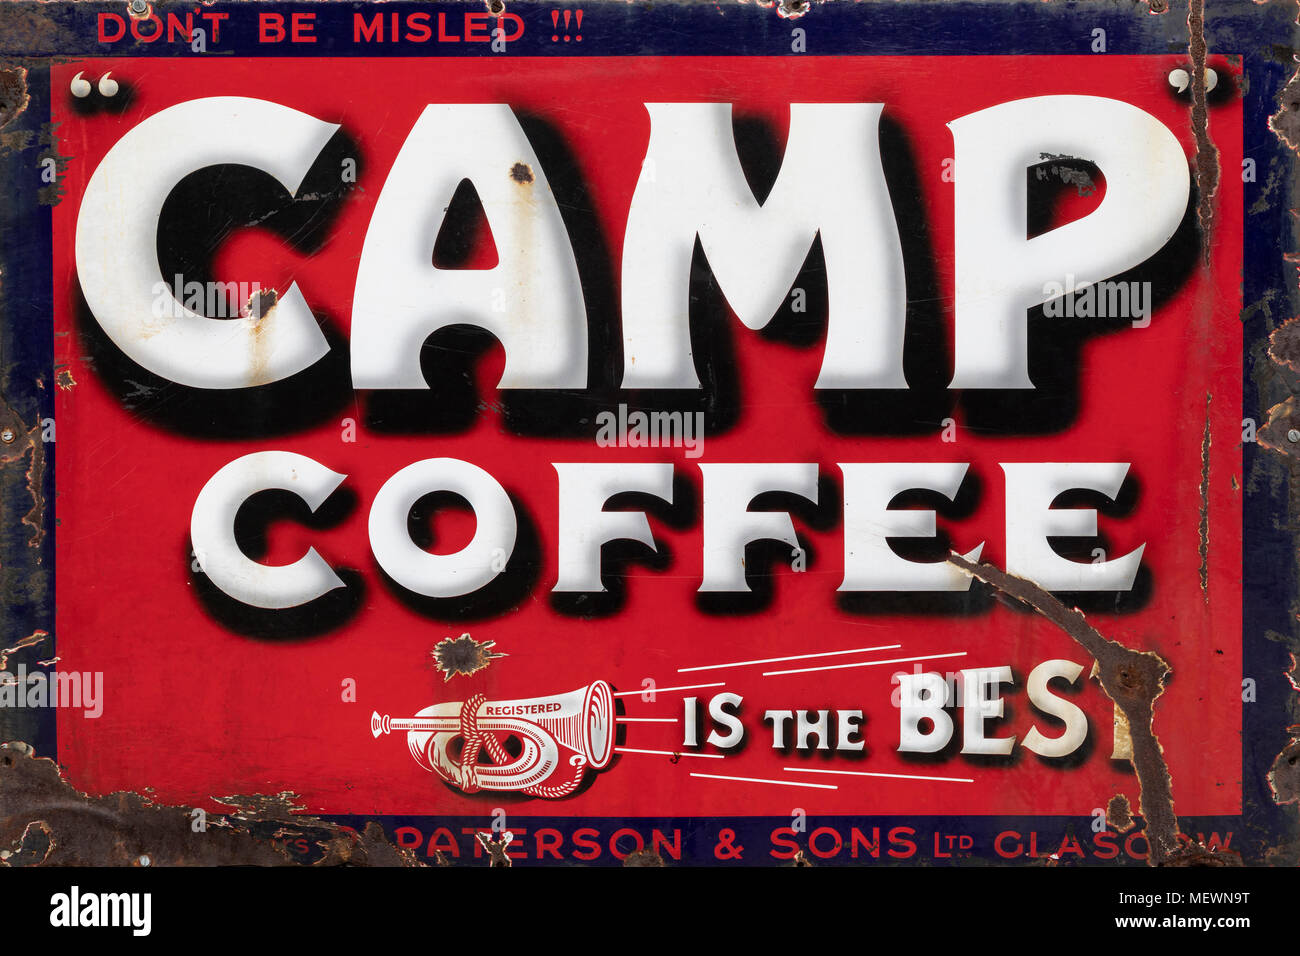 An old metal advetising sign for Camp Coffee - circa 1913 - Stock Image